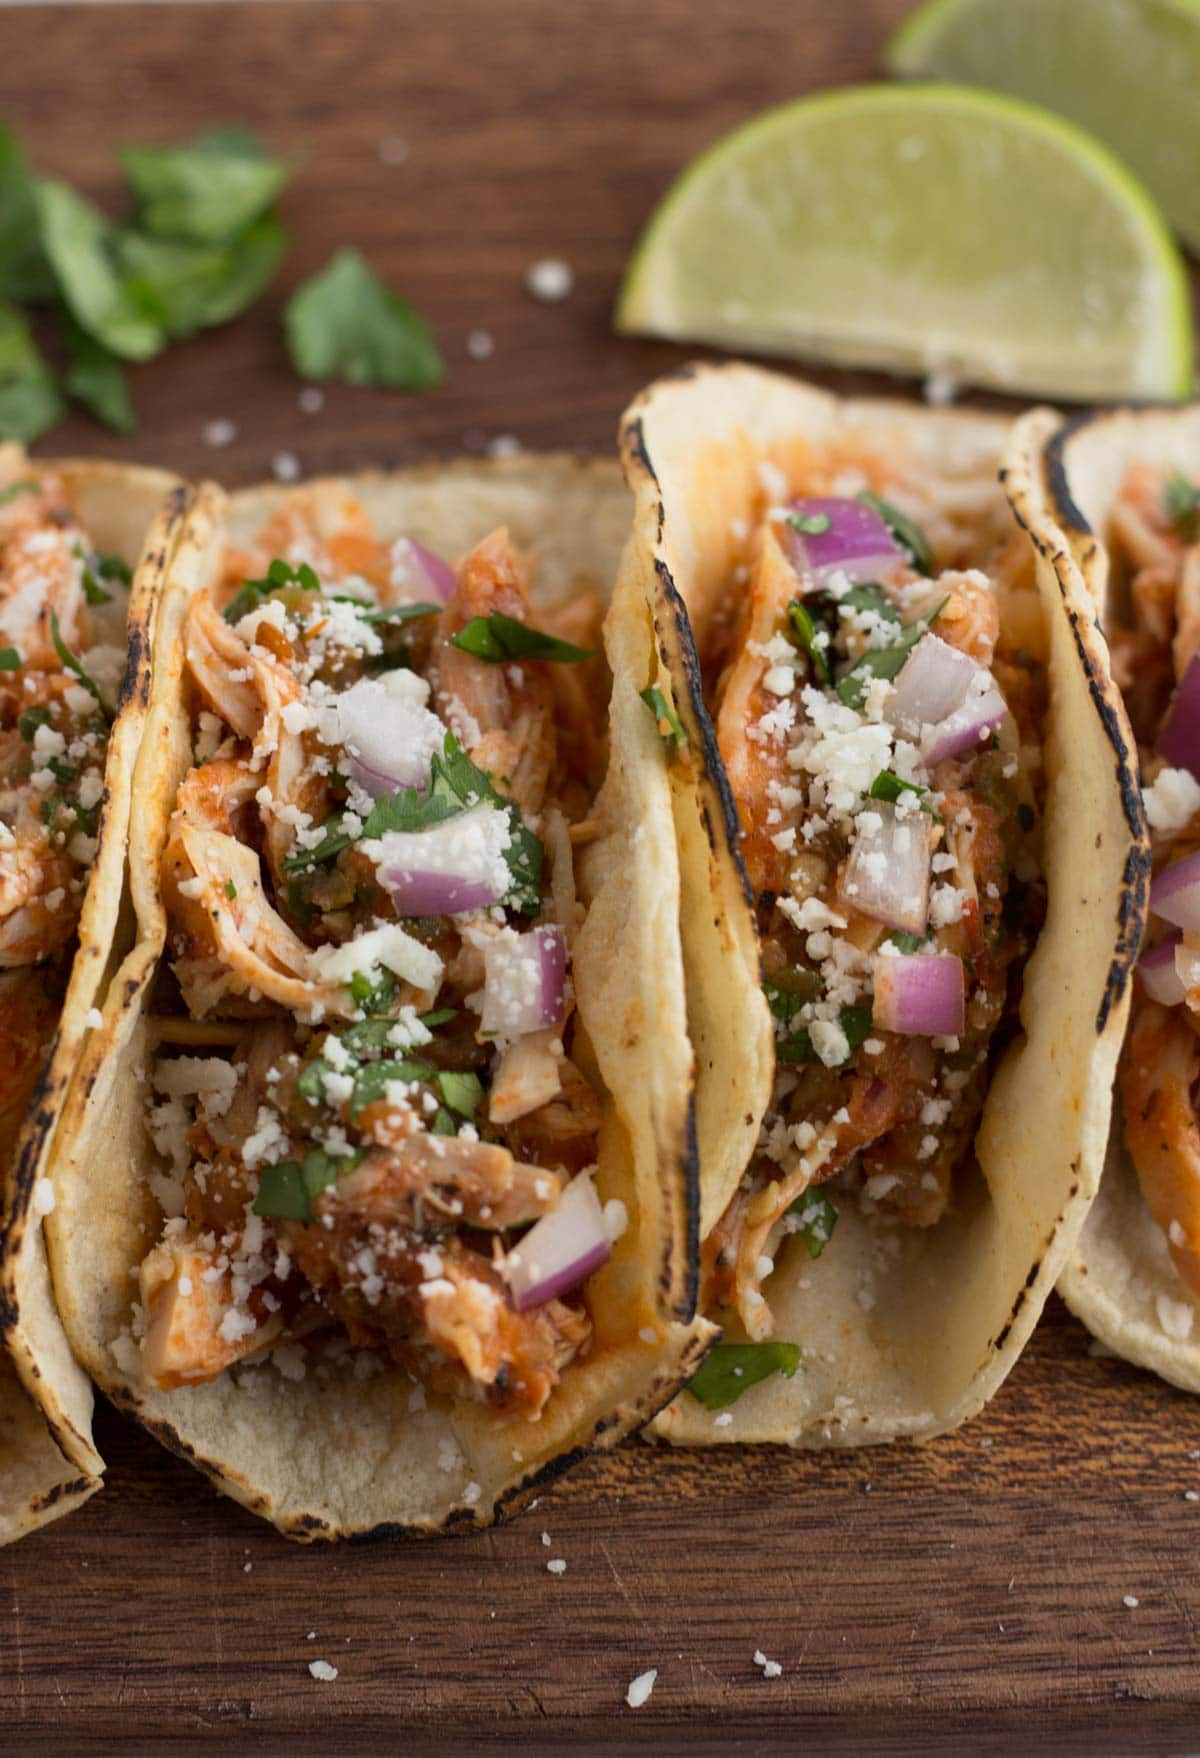 Chicken tacos in a smoky chipotle tomato sauce.